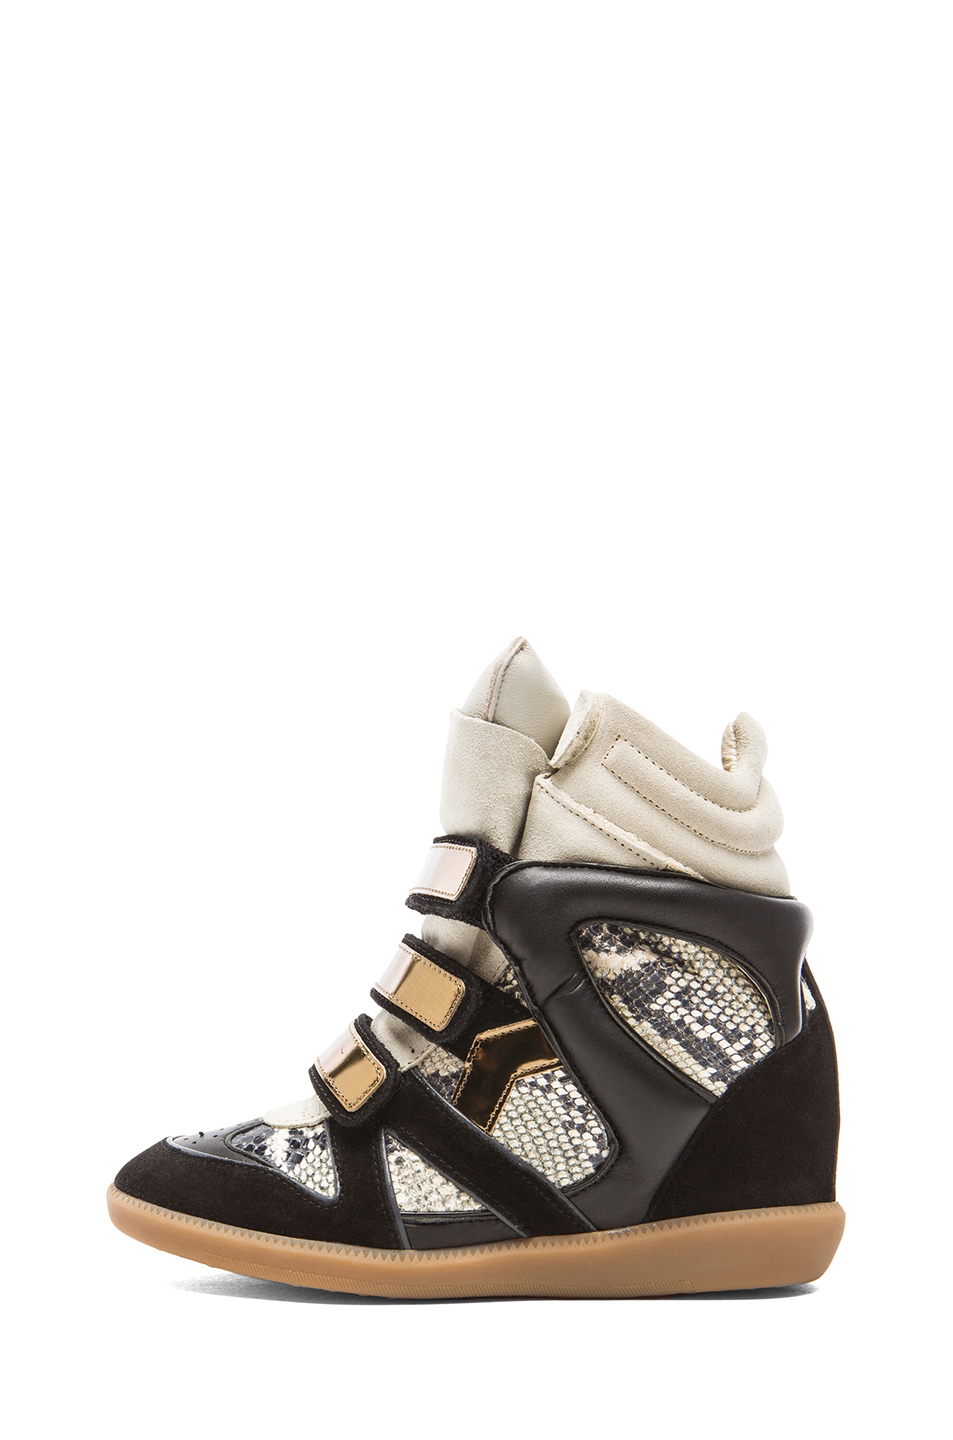 isabel marant high tops trainers in black lyst. Black Bedroom Furniture Sets. Home Design Ideas